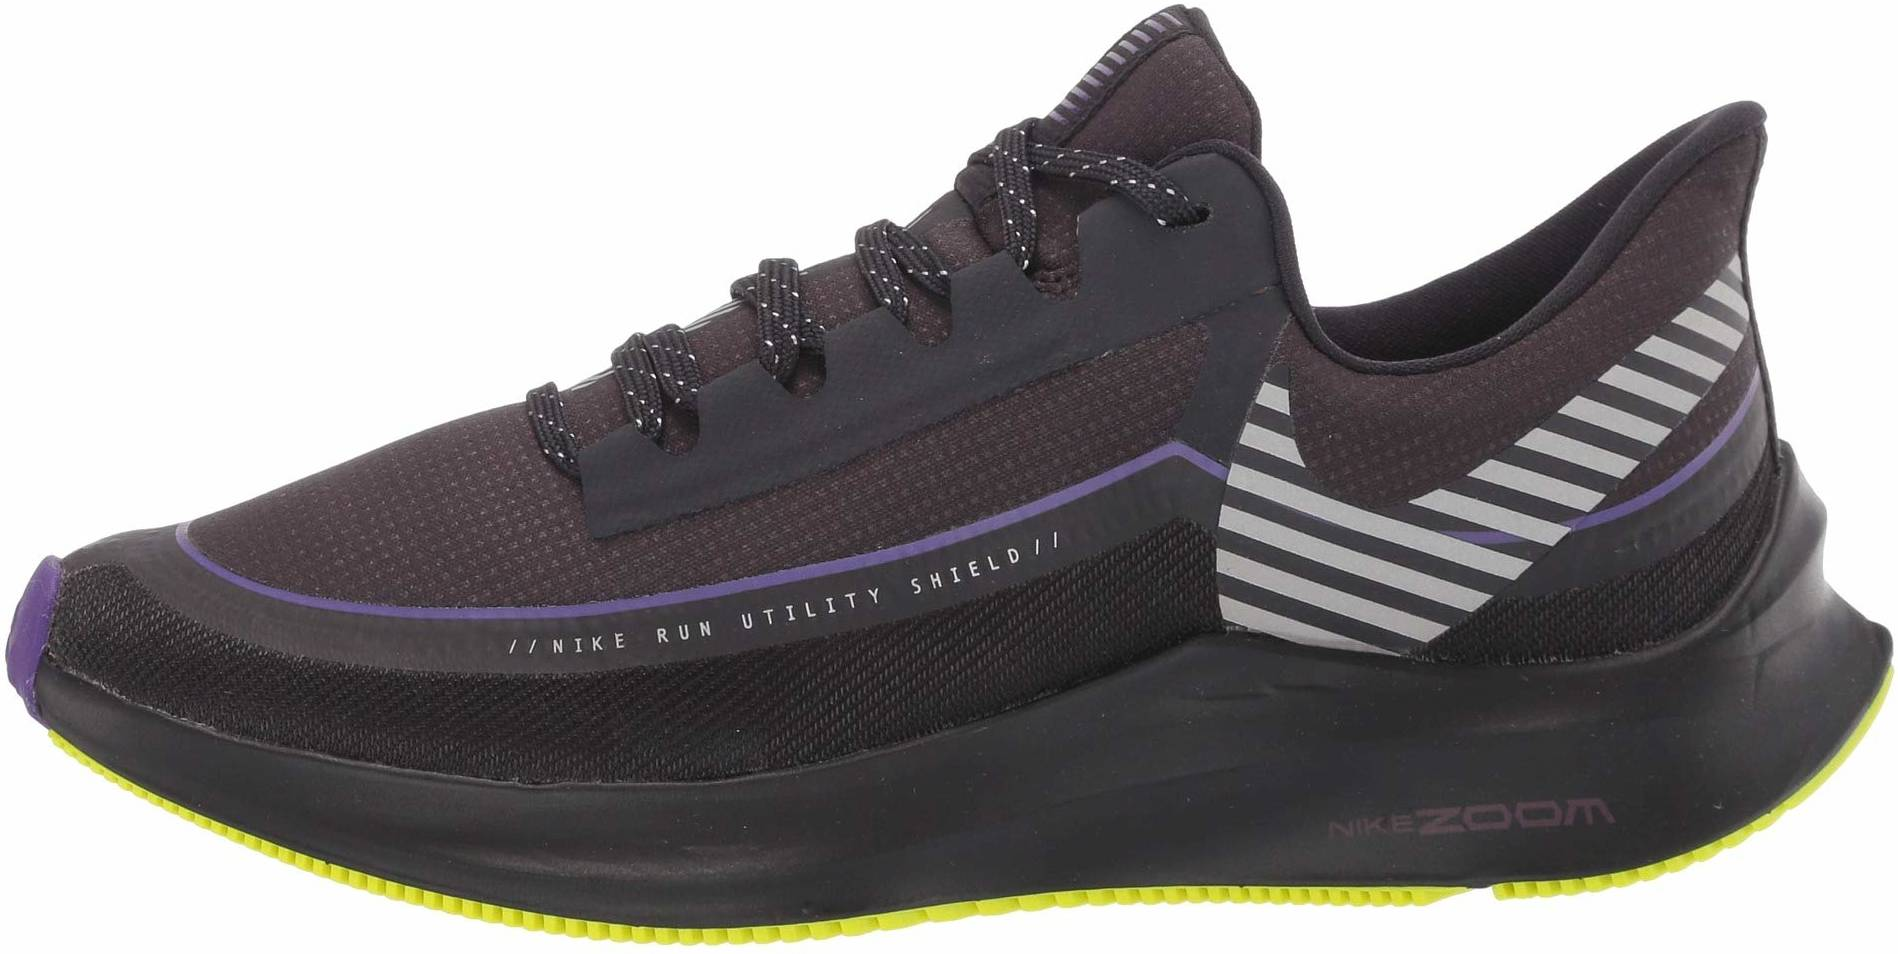 Nike Air Zoom Winflo 6 Shield - Deals, Facts, Reviews (2021 ...